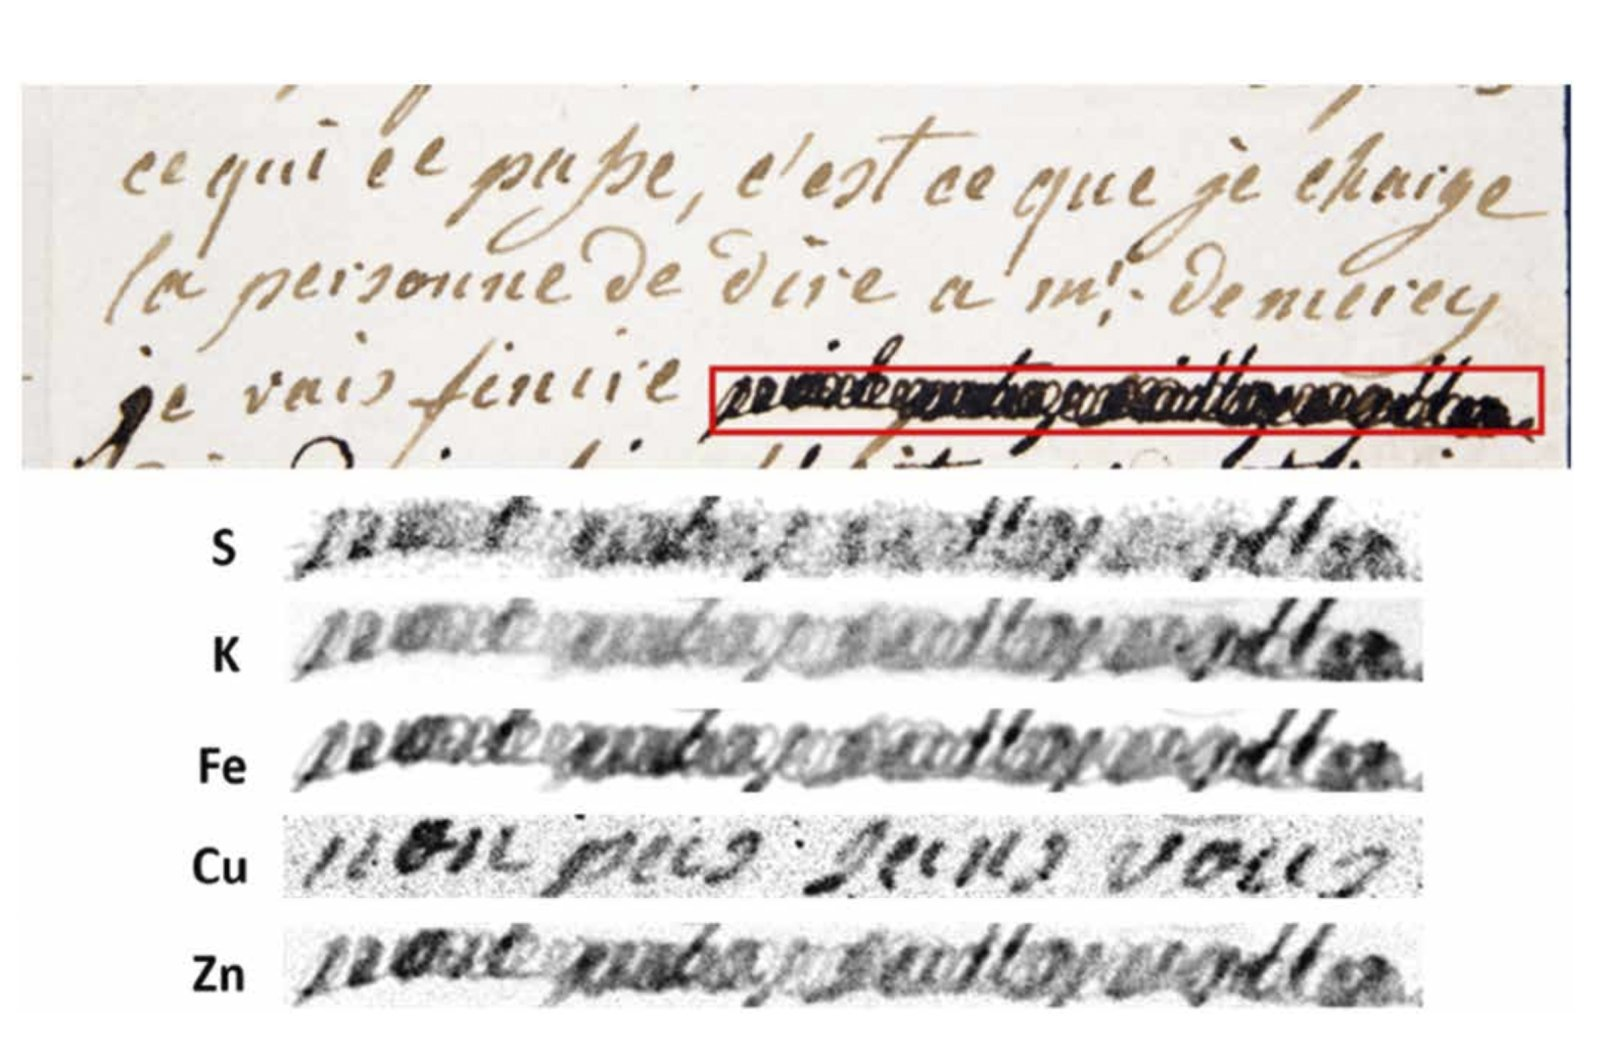 """This image provided by researchers shows a section of a letter dated Jan. 4, 1792 by Marie-Antoinette, queen of France and wife of Louis XVI, to Swedish count Axel von Fersen, with a phrase (outlined in red) redacted by an unknown censor. The bottom half shows results from an X-ray fluorescence spectroscopy scan on the redacted words. The copper (Cu) section reveals the French words, """"non pas sans vous"""" (""""not without you""""). (AP Photo)"""